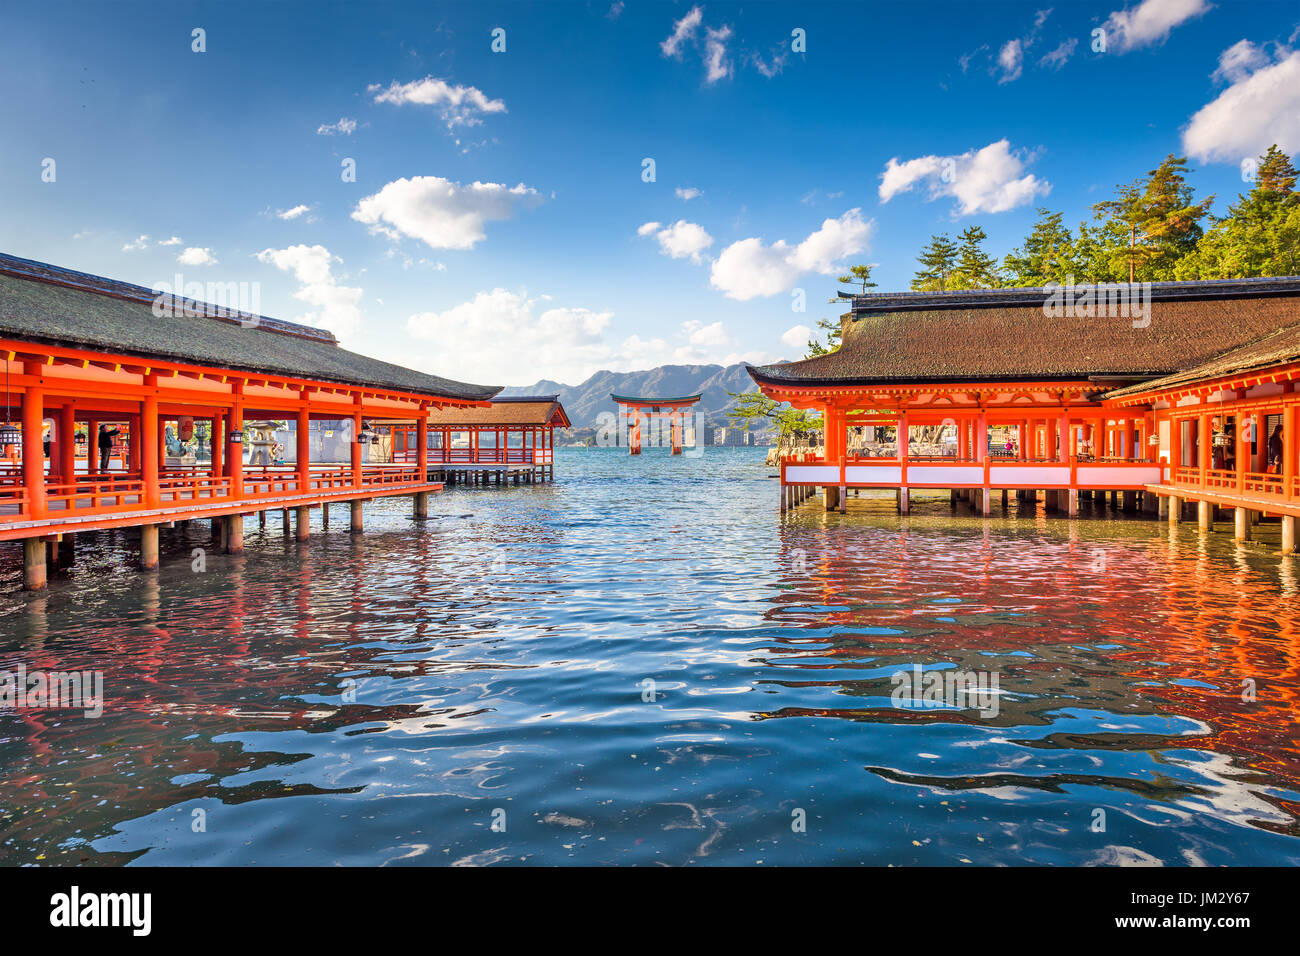 Miyajima, Hiroshima, Japan floating temple gate. - Stock Image